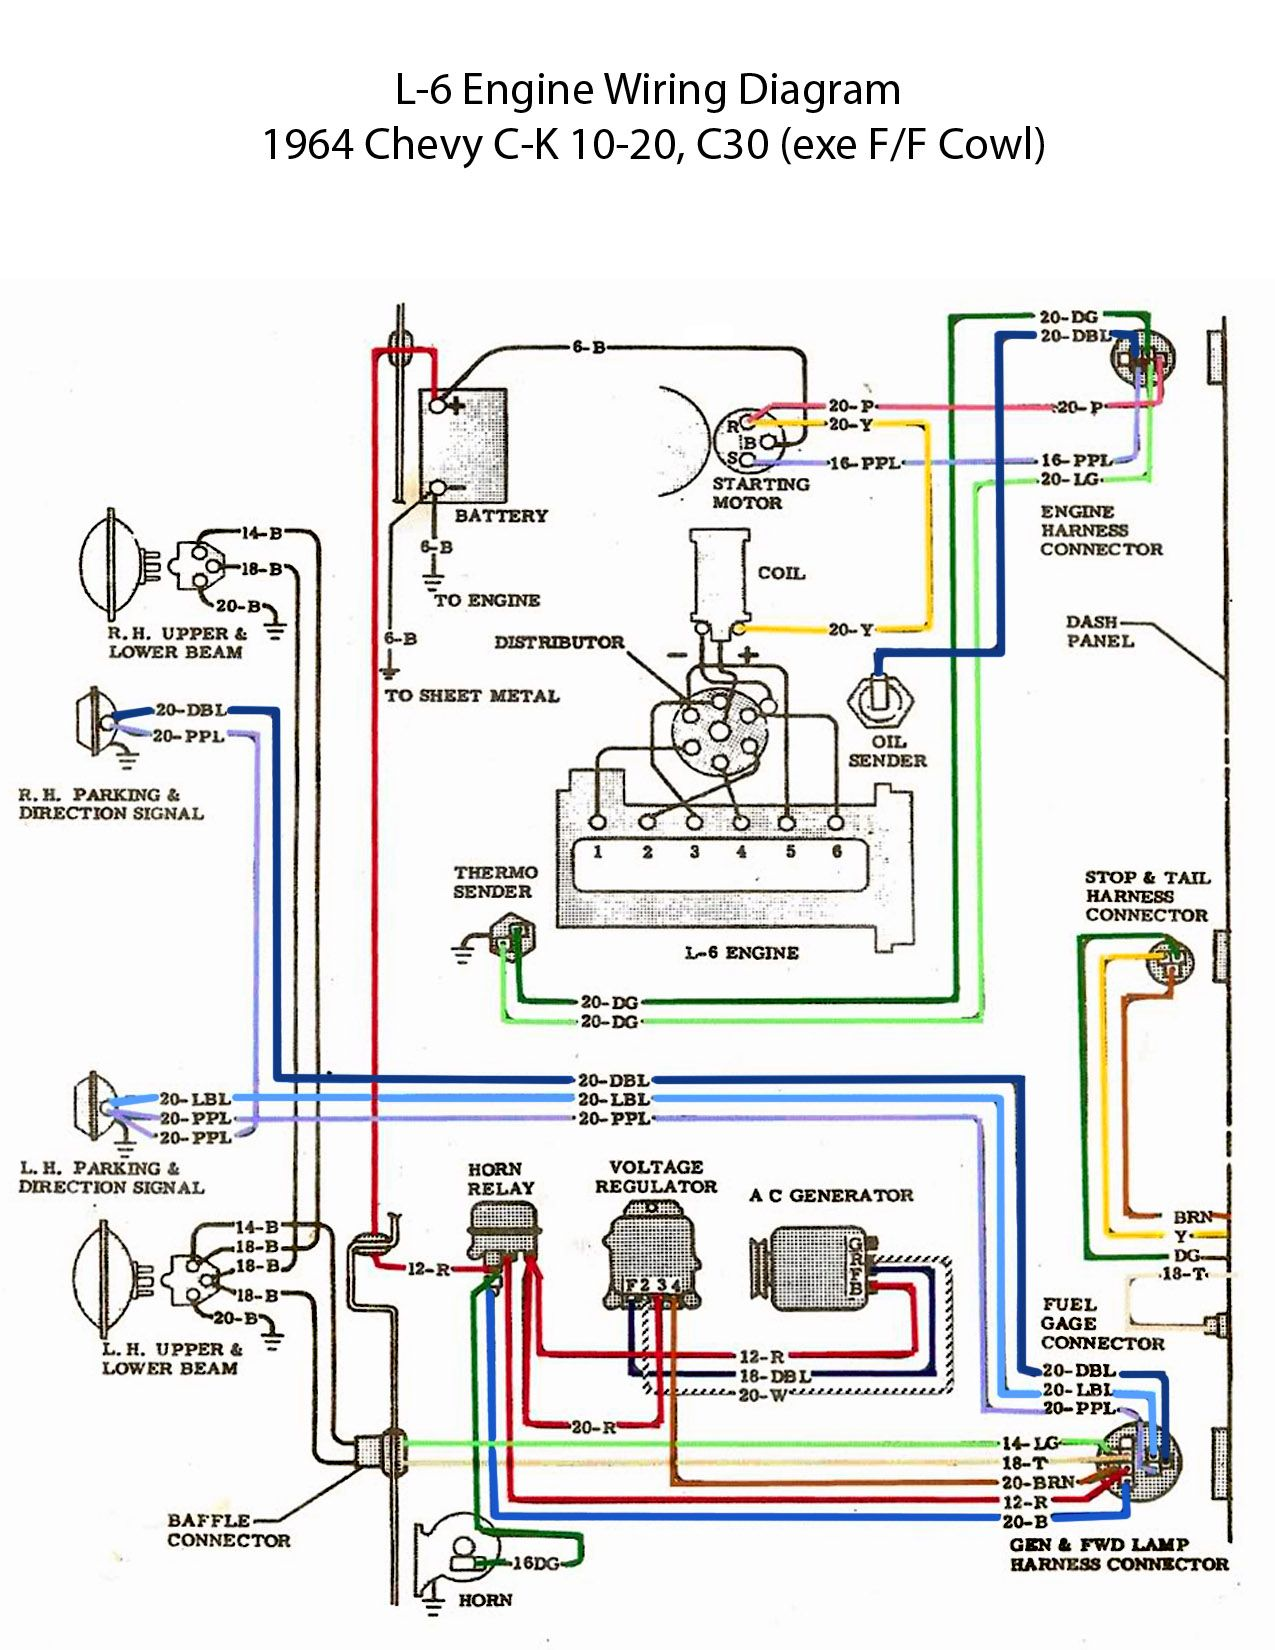 Electric L 6 Engine Wiring Diagram 60s Chevy C10 Jeep Alternator Colors Free Download Schematic